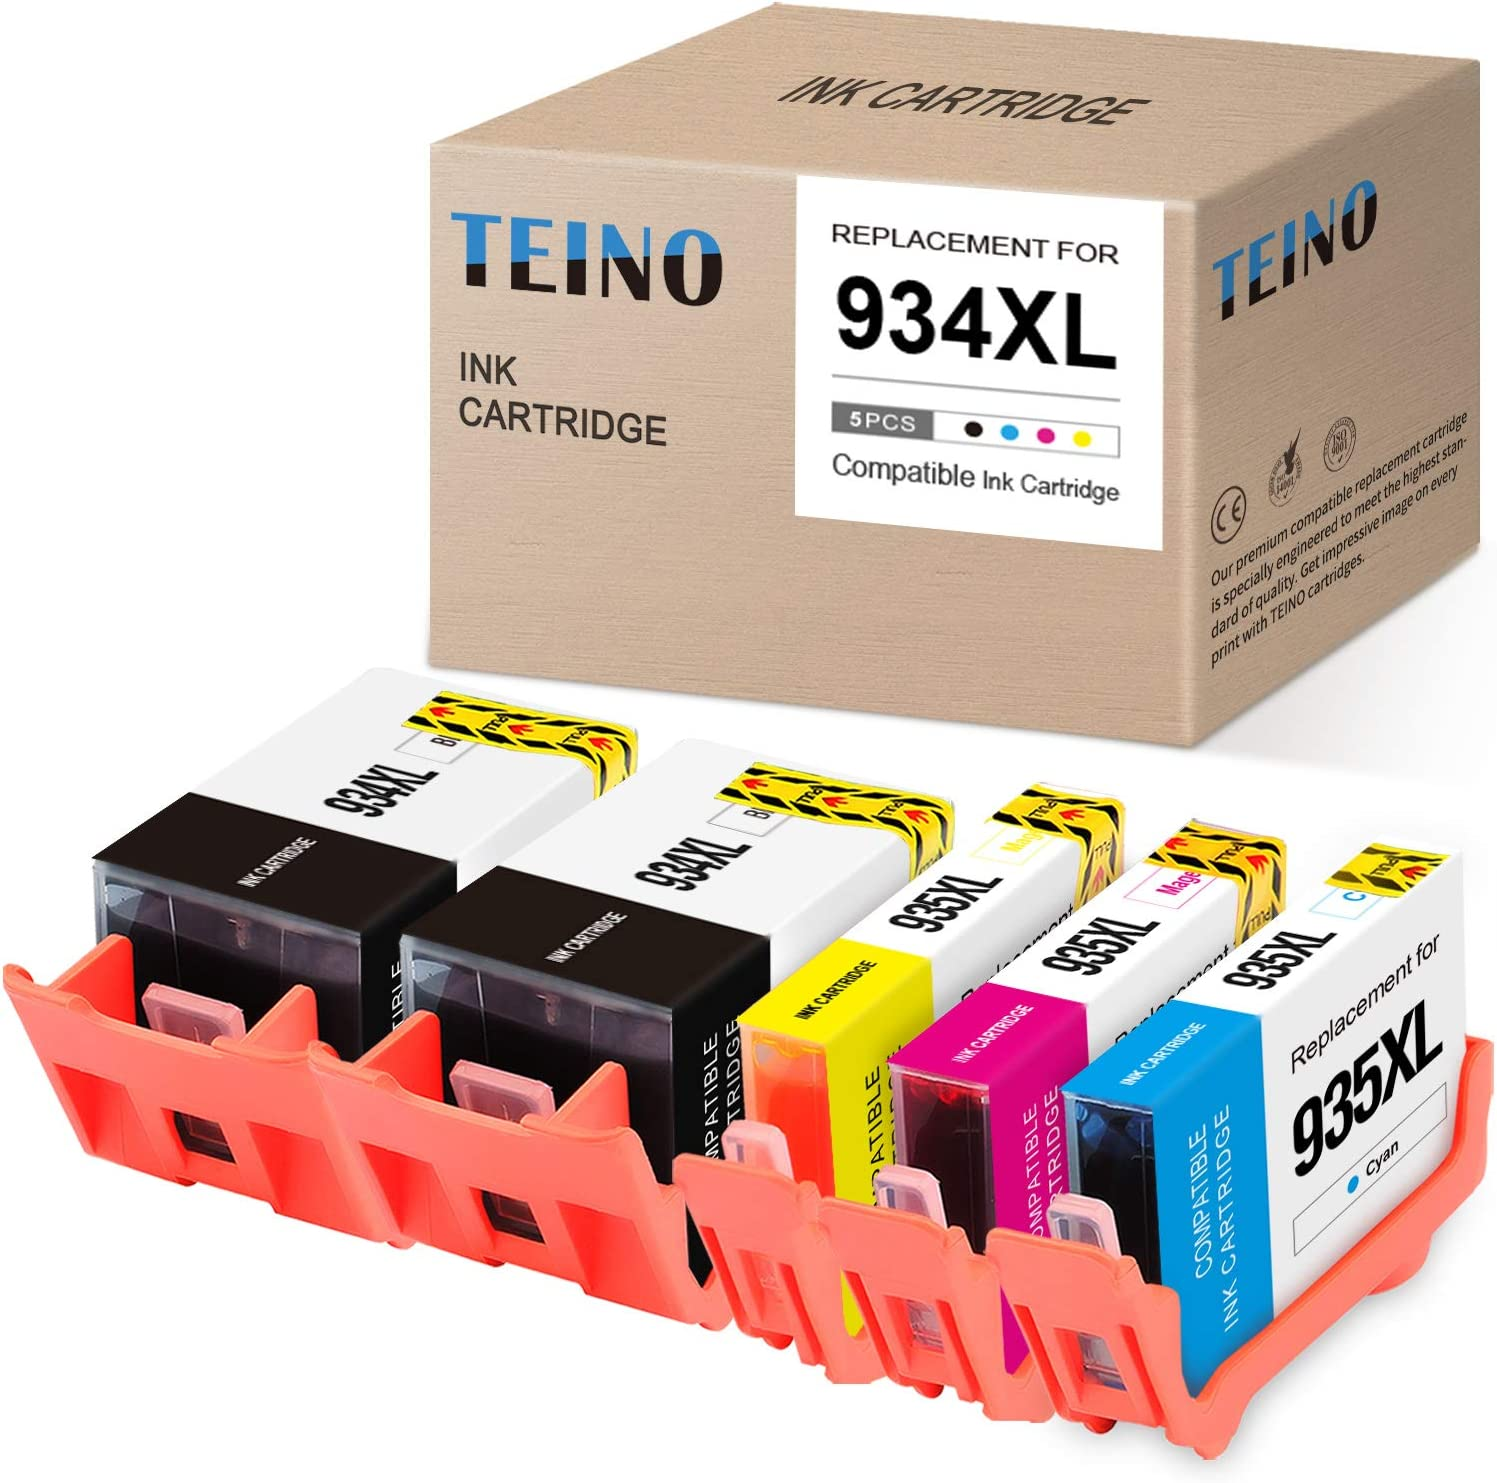 TEINO Compatible Ink Cartridges Replacement for HP 934XL 934 935XL 935 use with HP OfficeJet 6812 6815 6220 6810 6820 OfficeJet Pro 6830 6835 6230 (Black, Cyan, Magenta, Yellow, 5-Pack)